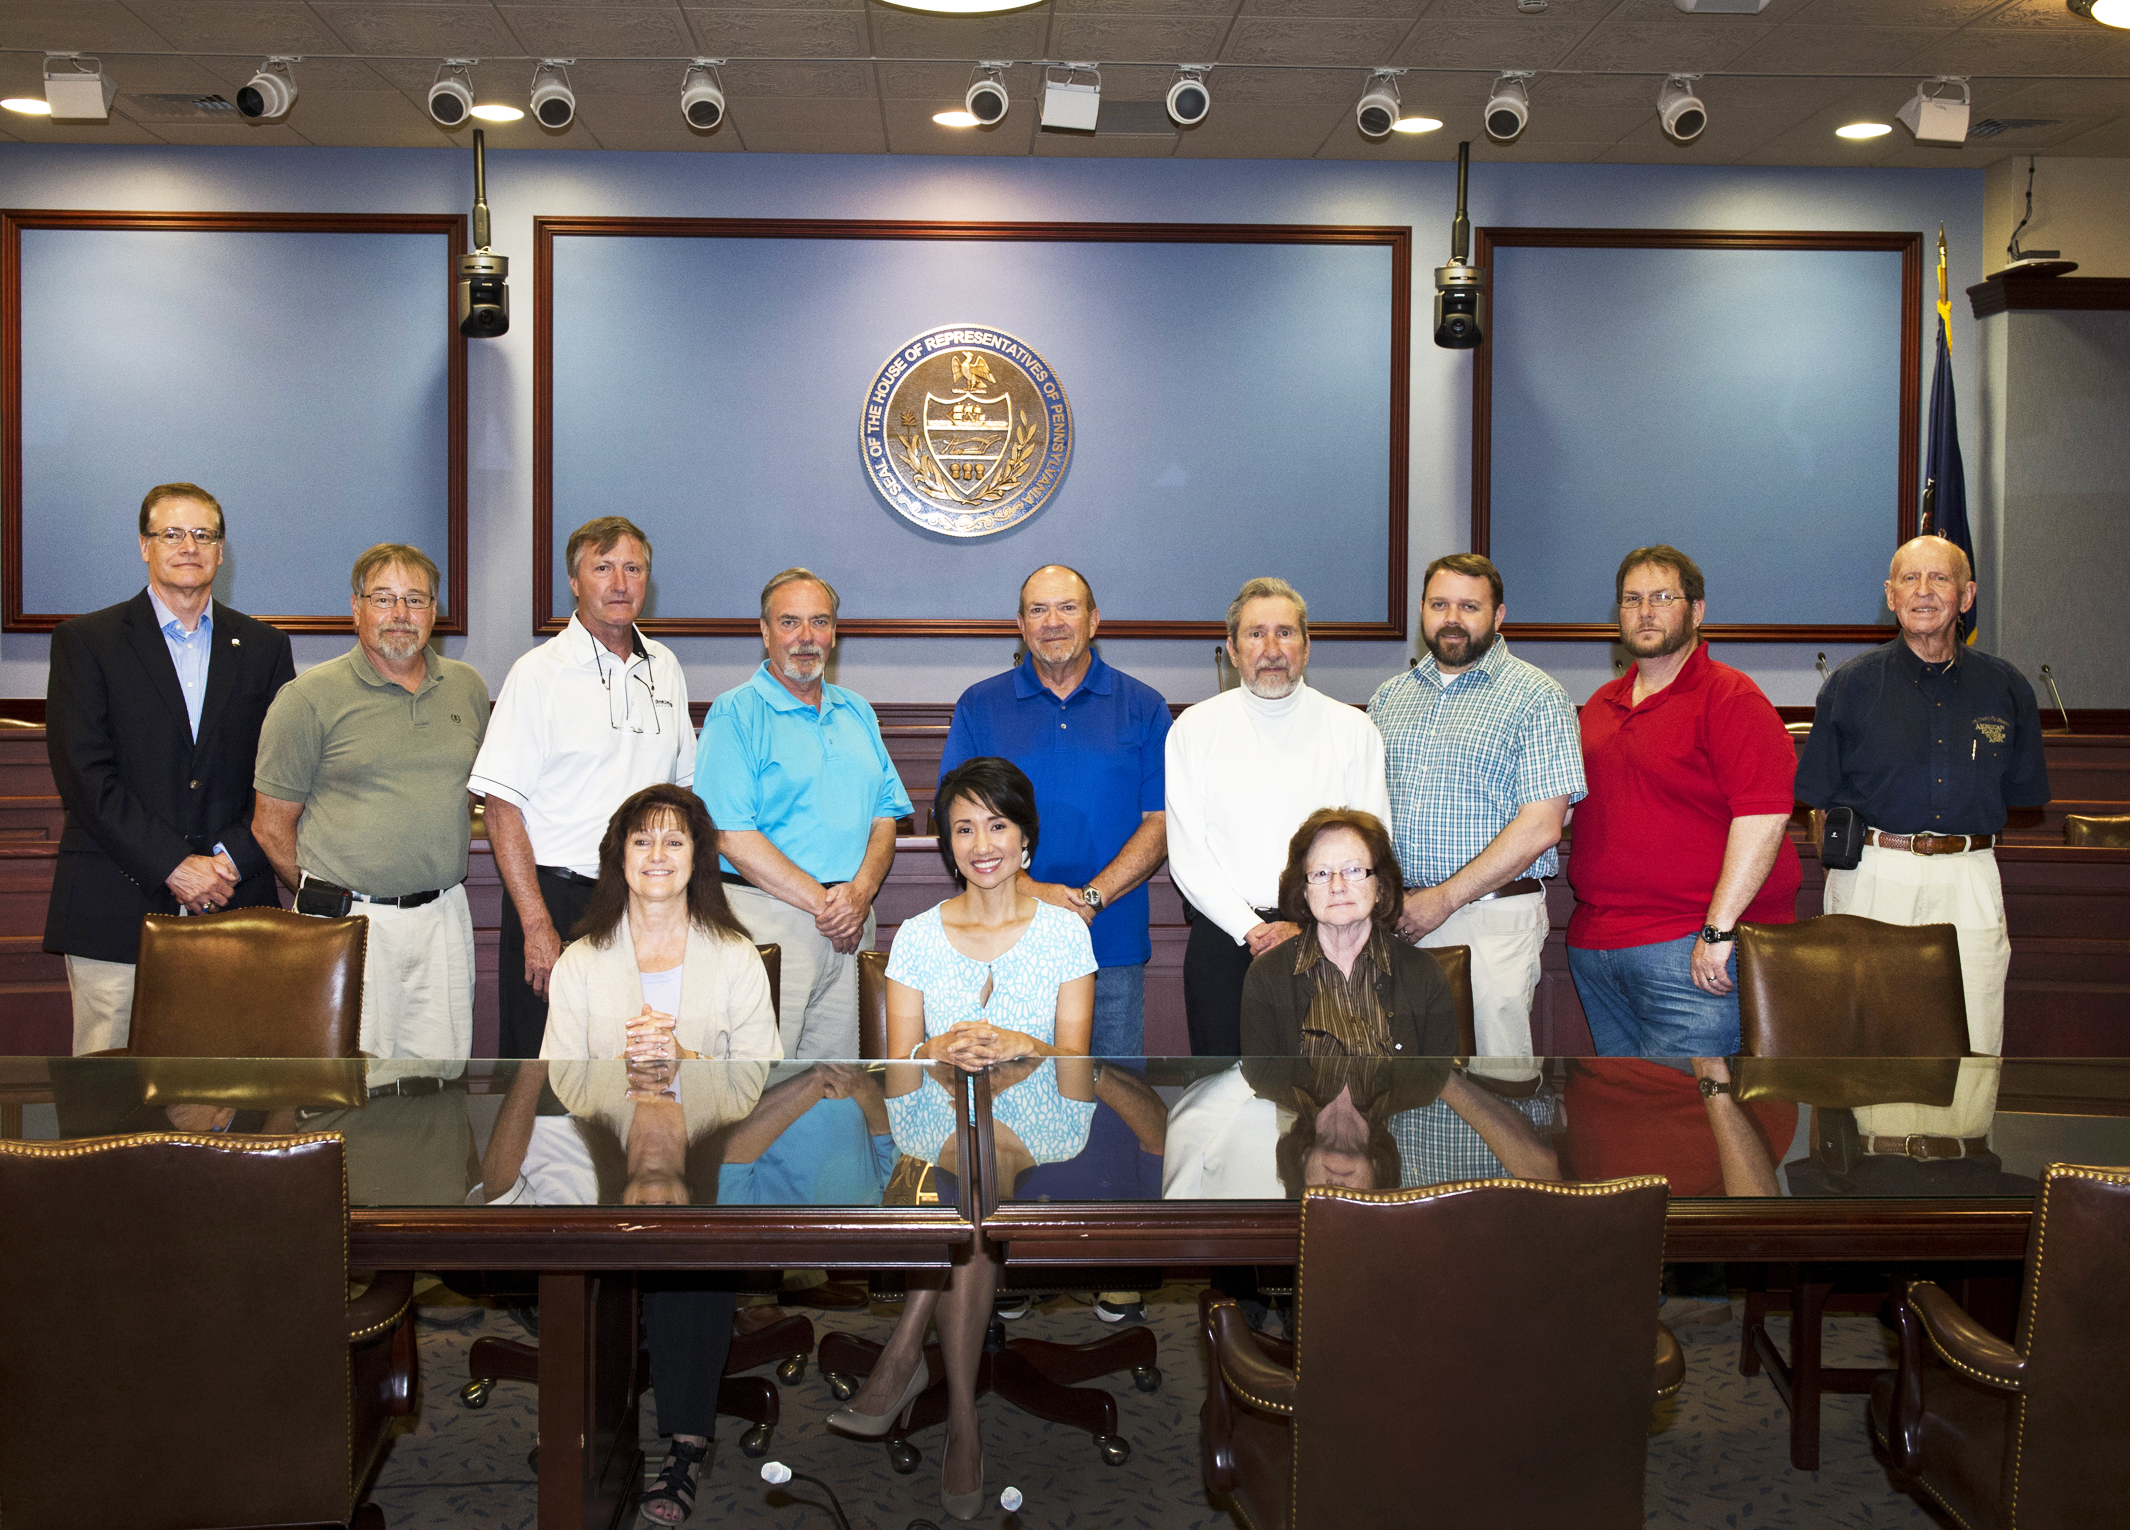 2015 Public Works Week trip to PA House of Representatives